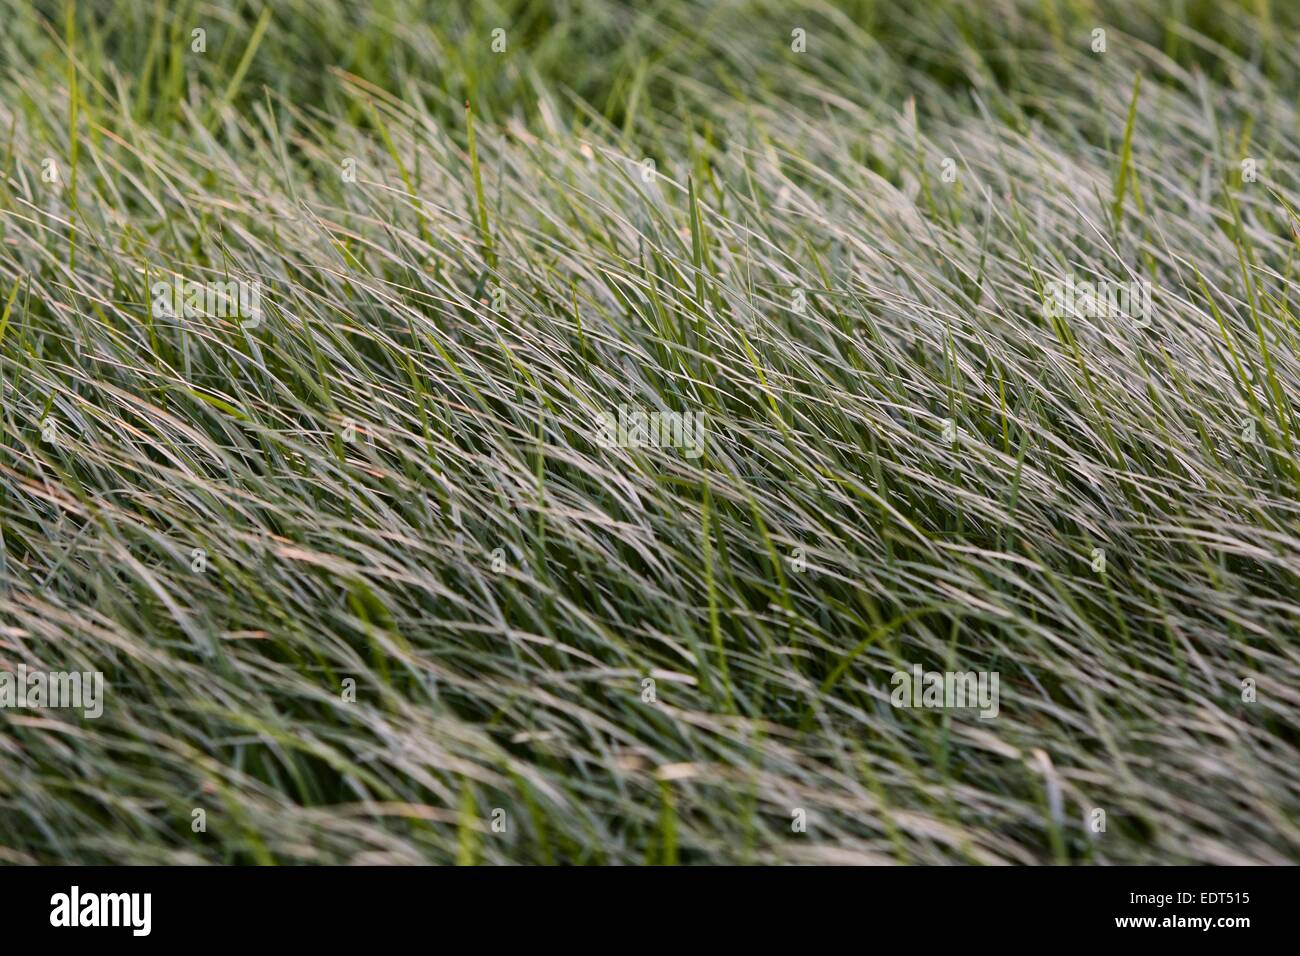 abstract photo of grass being blown by the wind - Stock Image